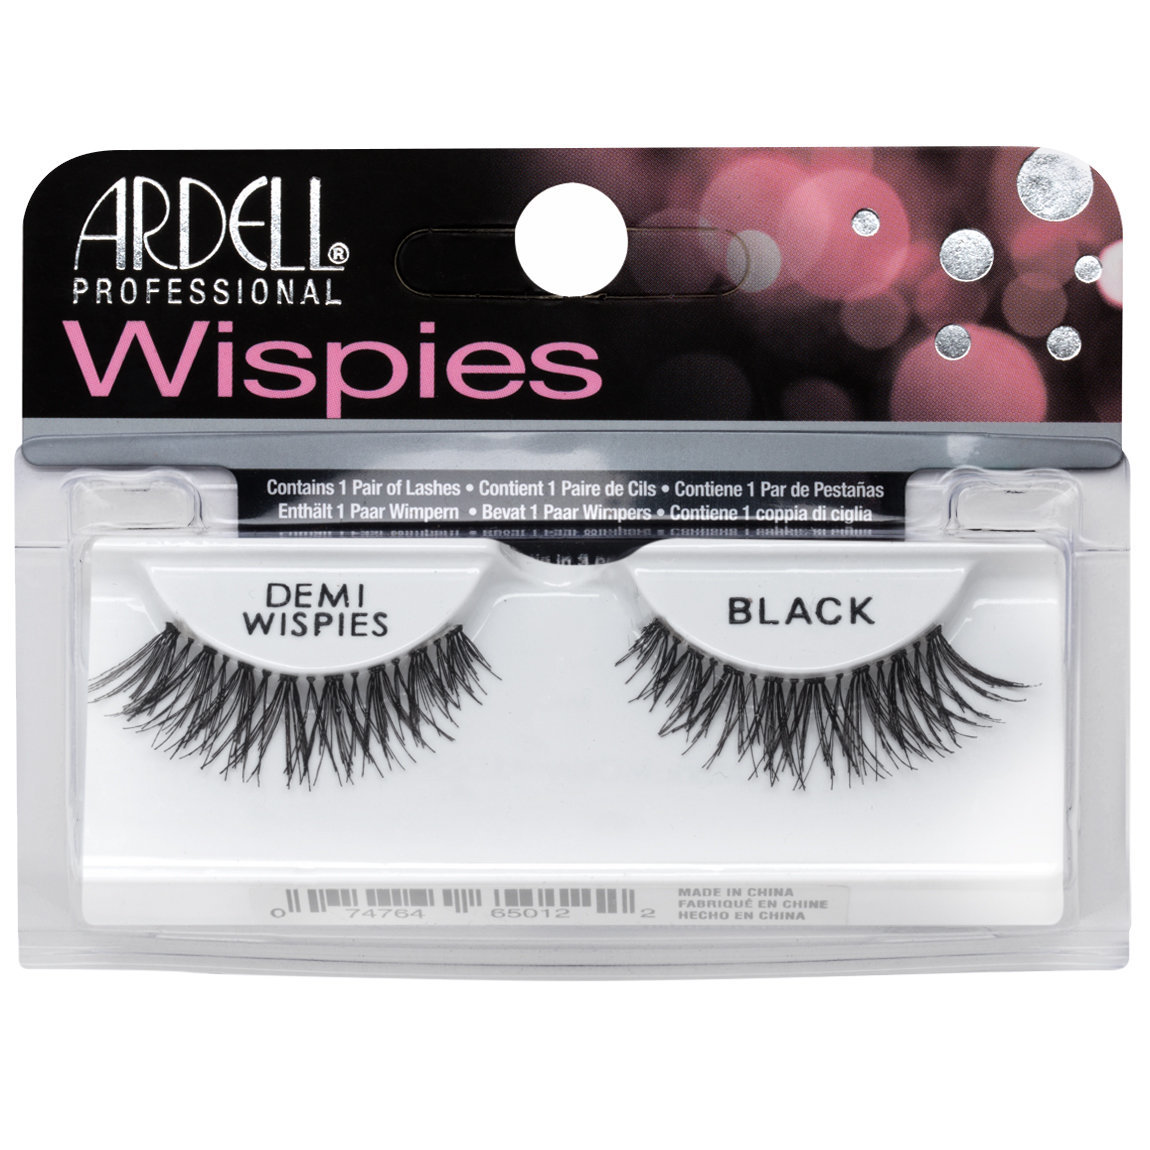 a60bce07a58 Ardell Wispies Lashes Demi Wispies Black | Beautylish